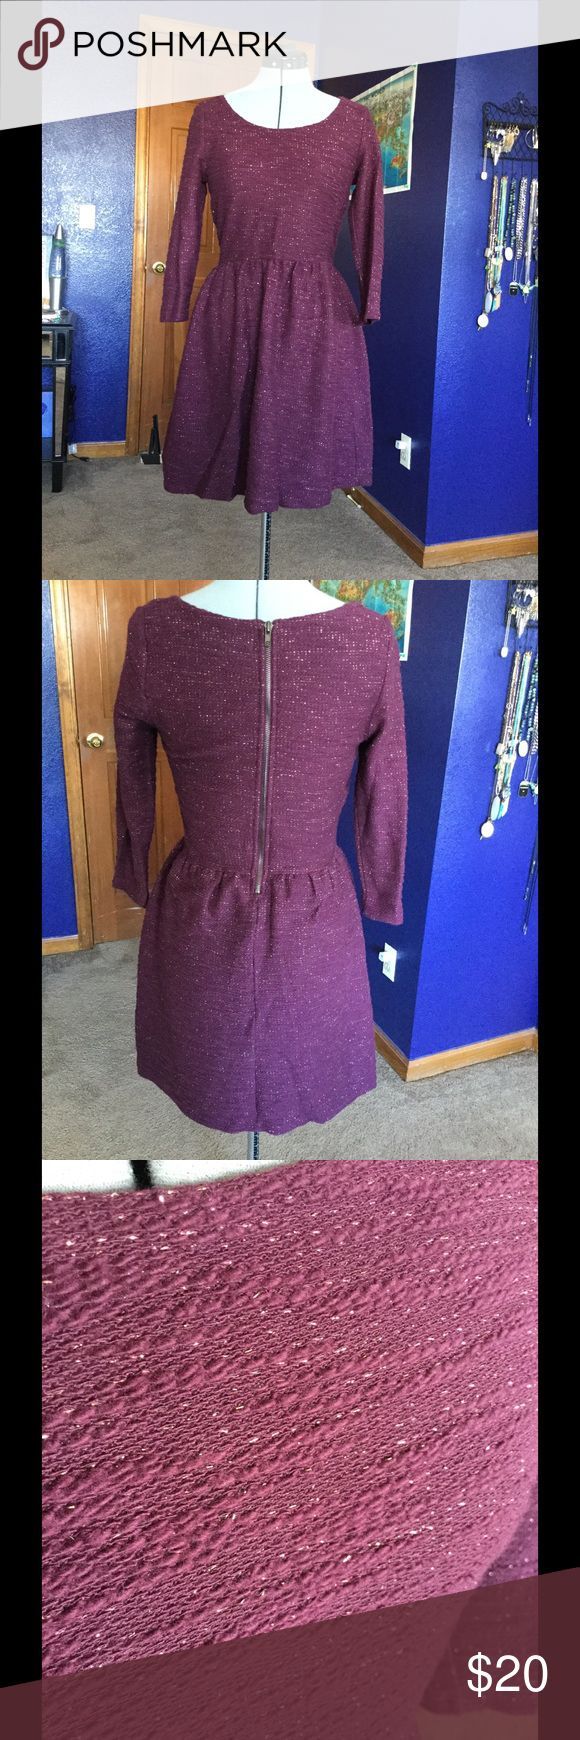 Maison Jules Plum and Gold Dress A beautiful plum colored dress with flecks of gold in the fabric. Never worn, in new condition. It has a zipper on the back and quarter length sleeves. Maison Jules Dresses